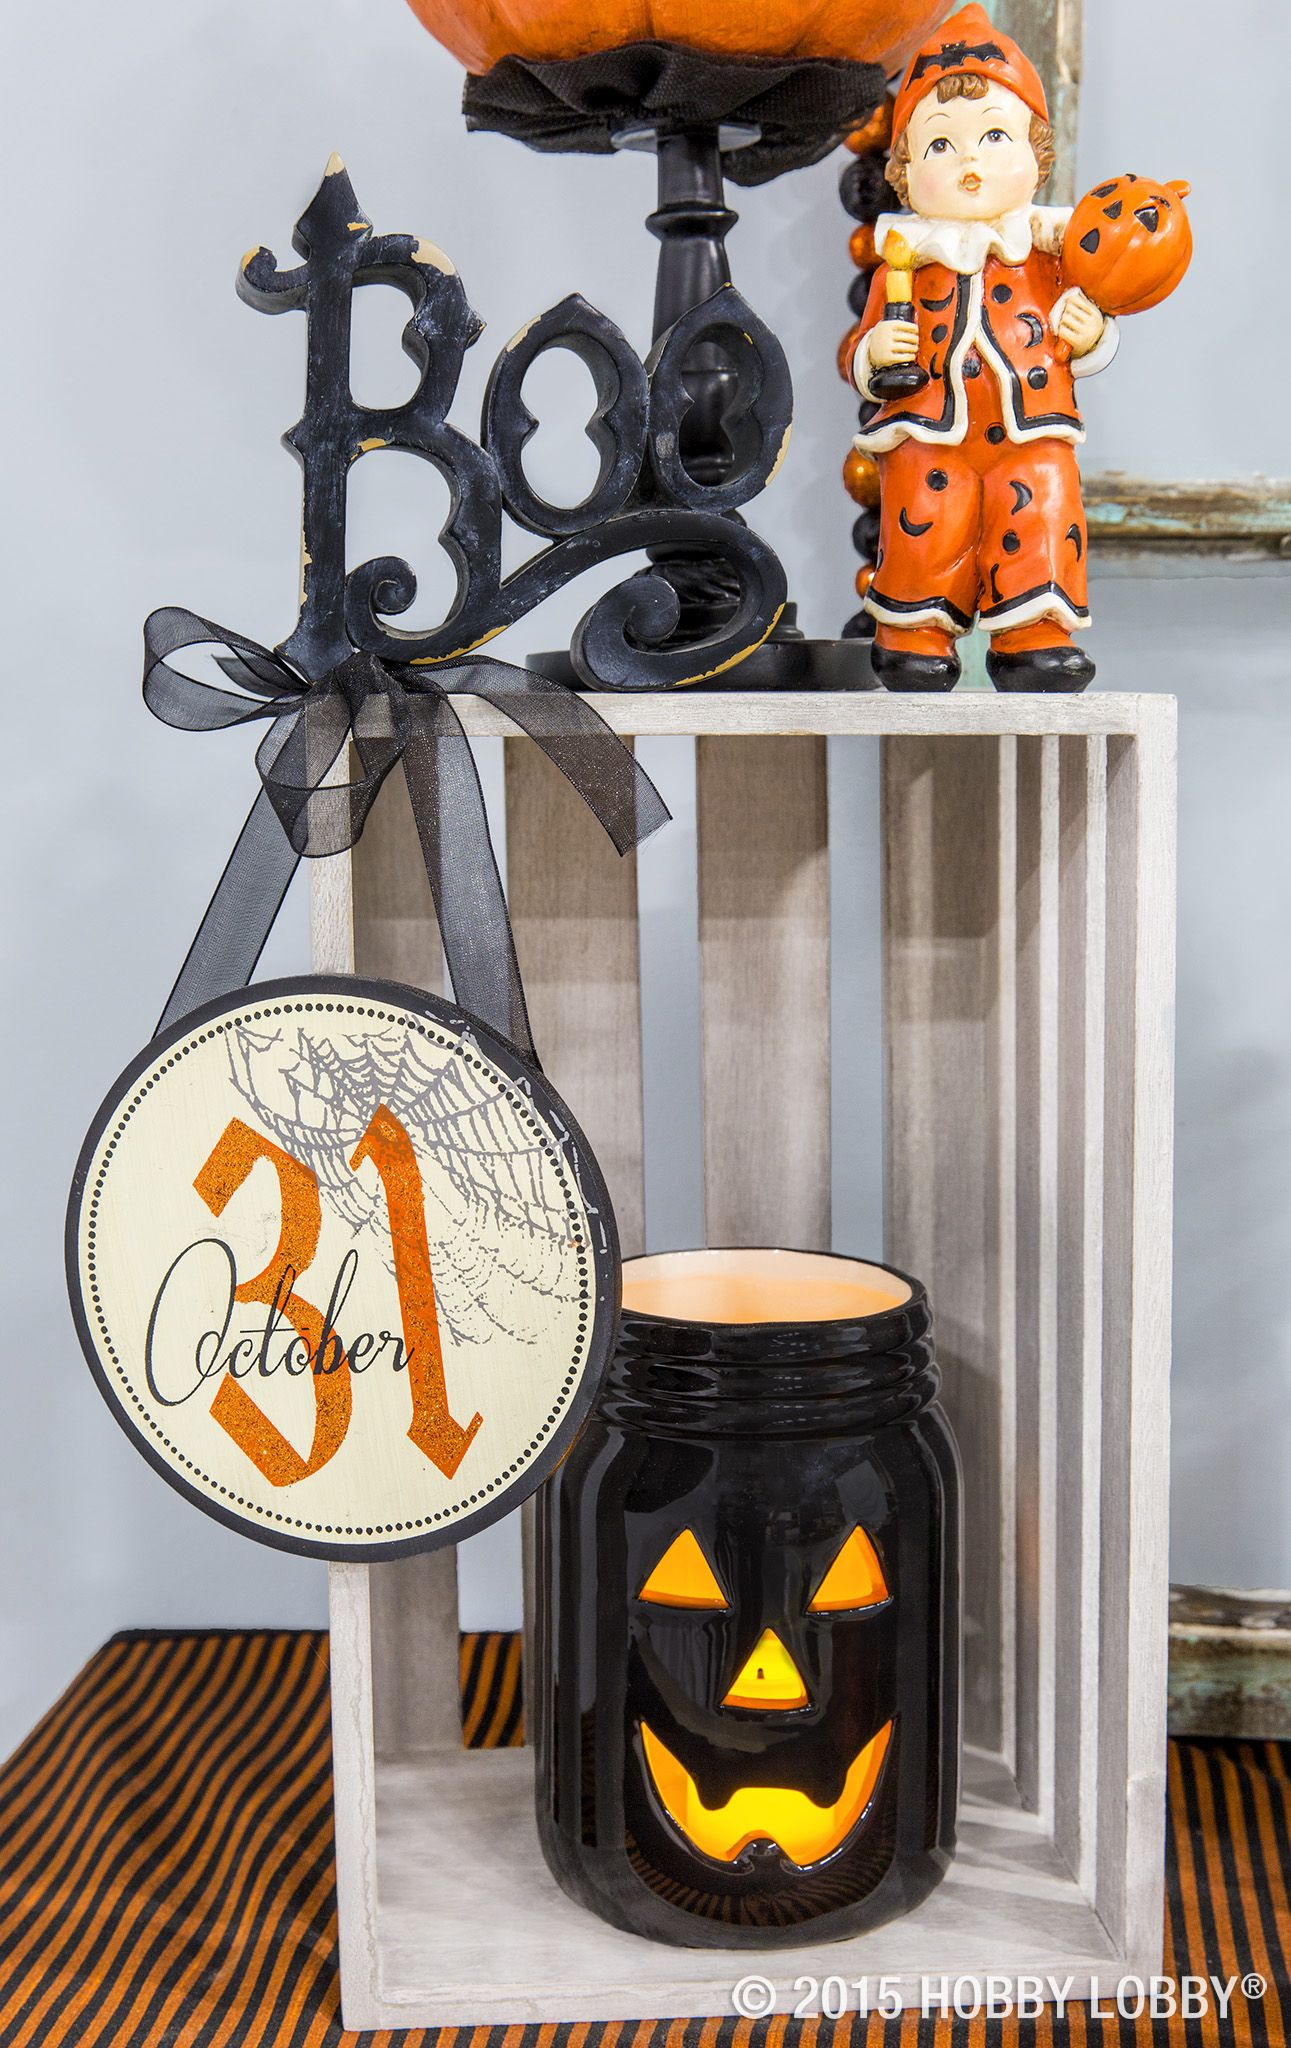 Vintage-style Halloween never looked so good! Holidays Pinterest - Hobby Lobby Halloween Decorations